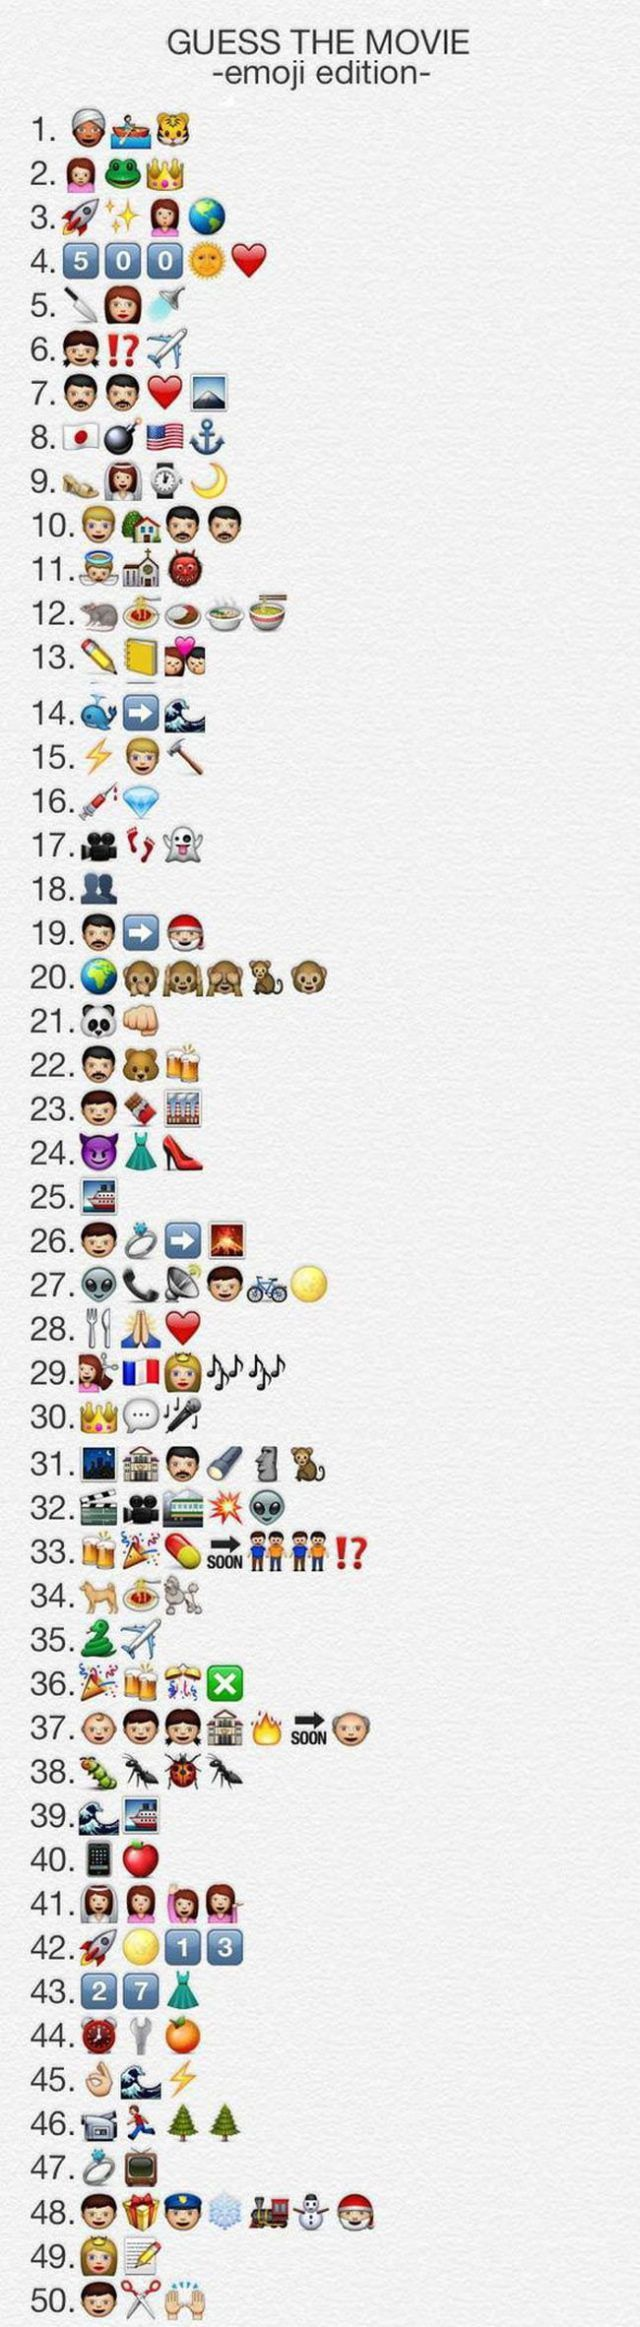 Emoji Interpretations Of 50 Movies 2 Pics Guess The Movie Guess The Emoji Emoji Quiz